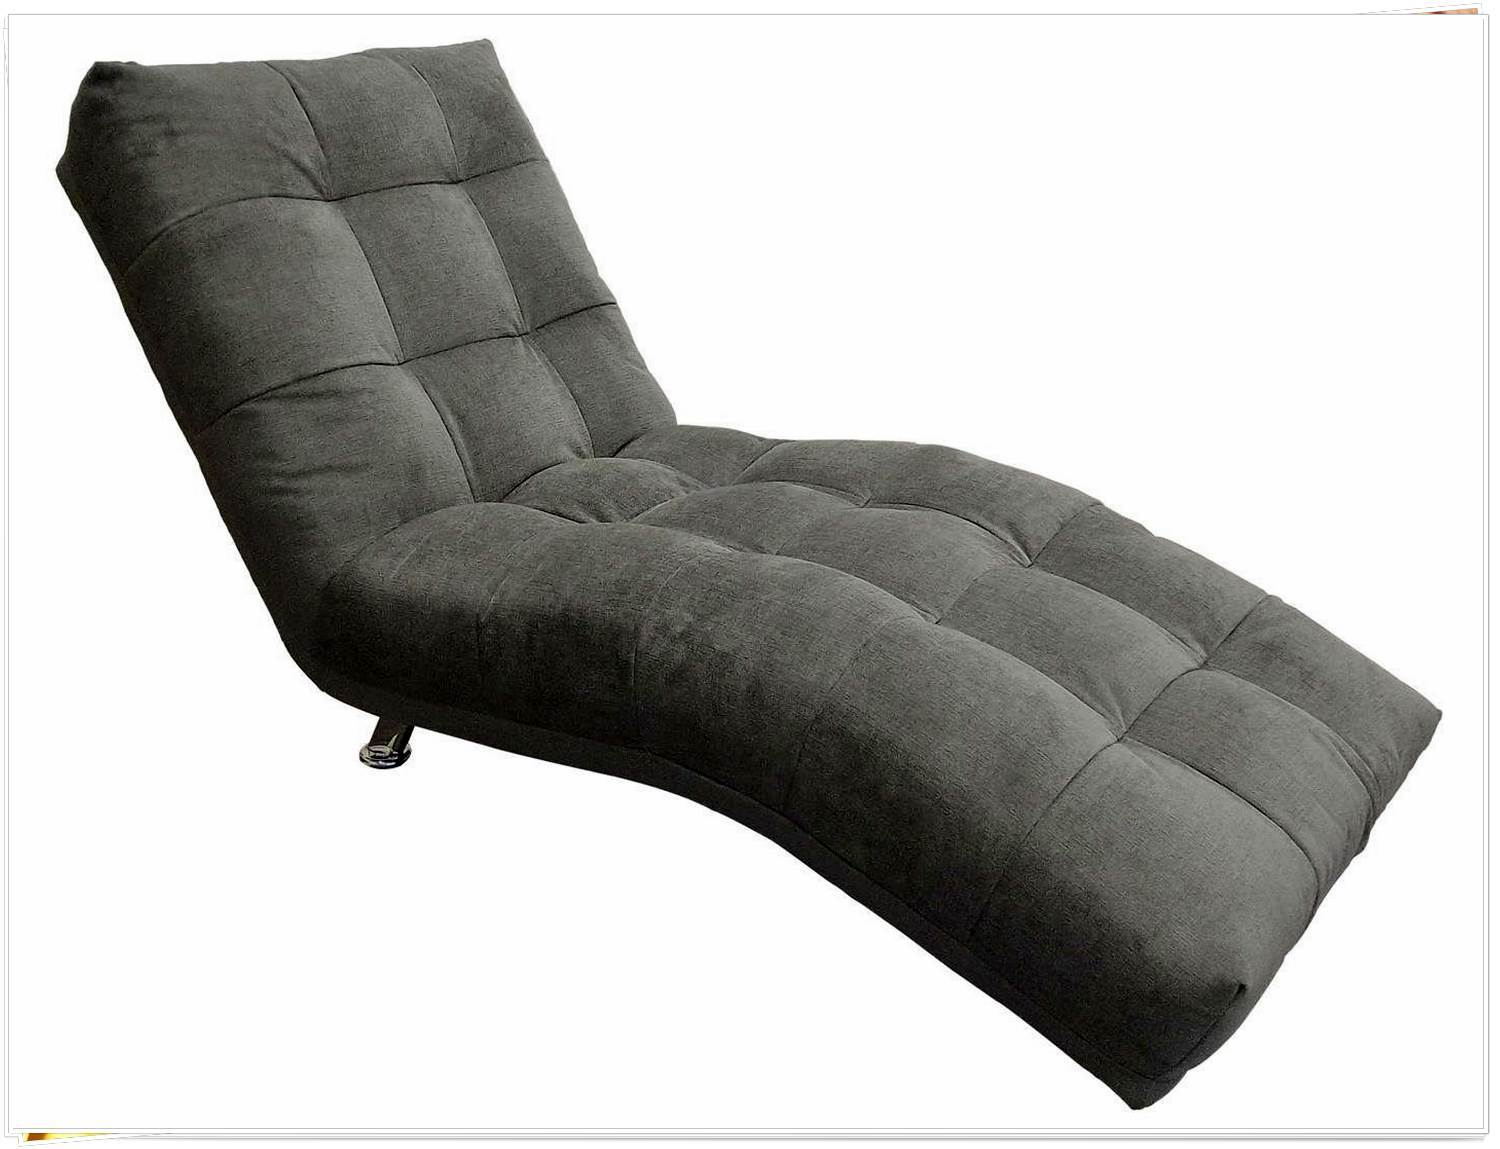 Fauteuil Conforama Vert Fauteuil Bascule Conforama Gallery Of Chaise A Bascule